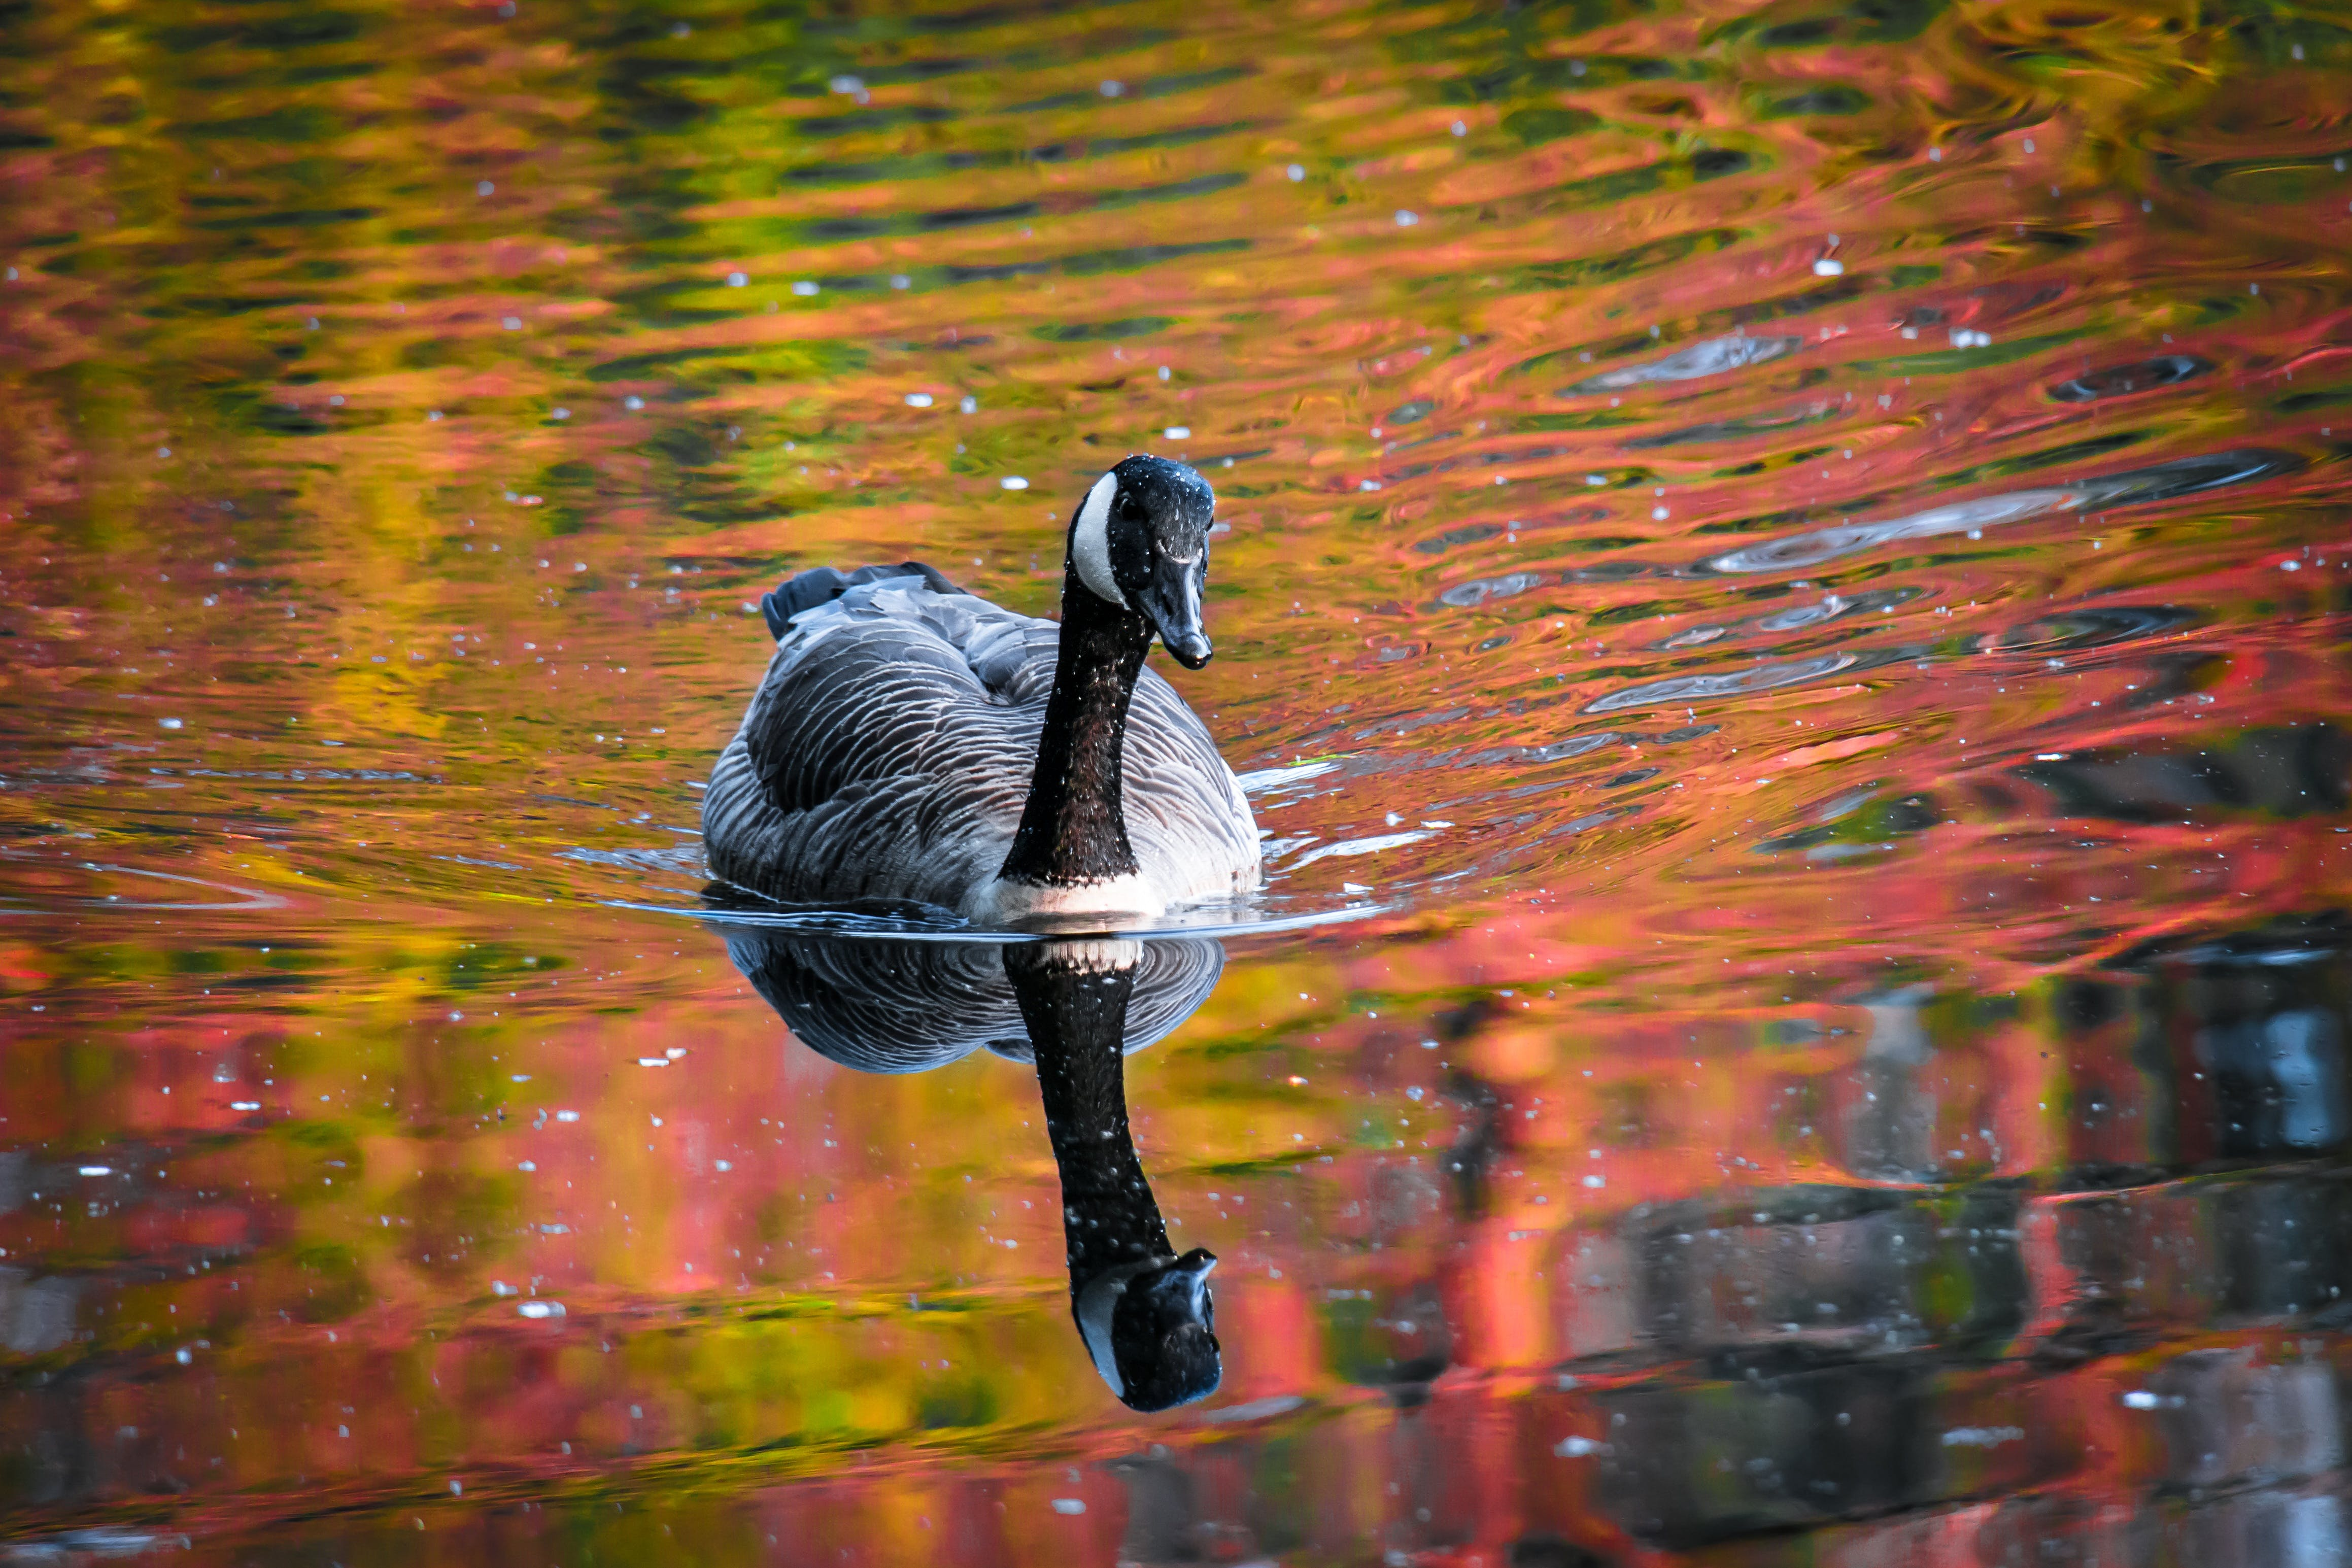 Black and White Duck on Body of Water